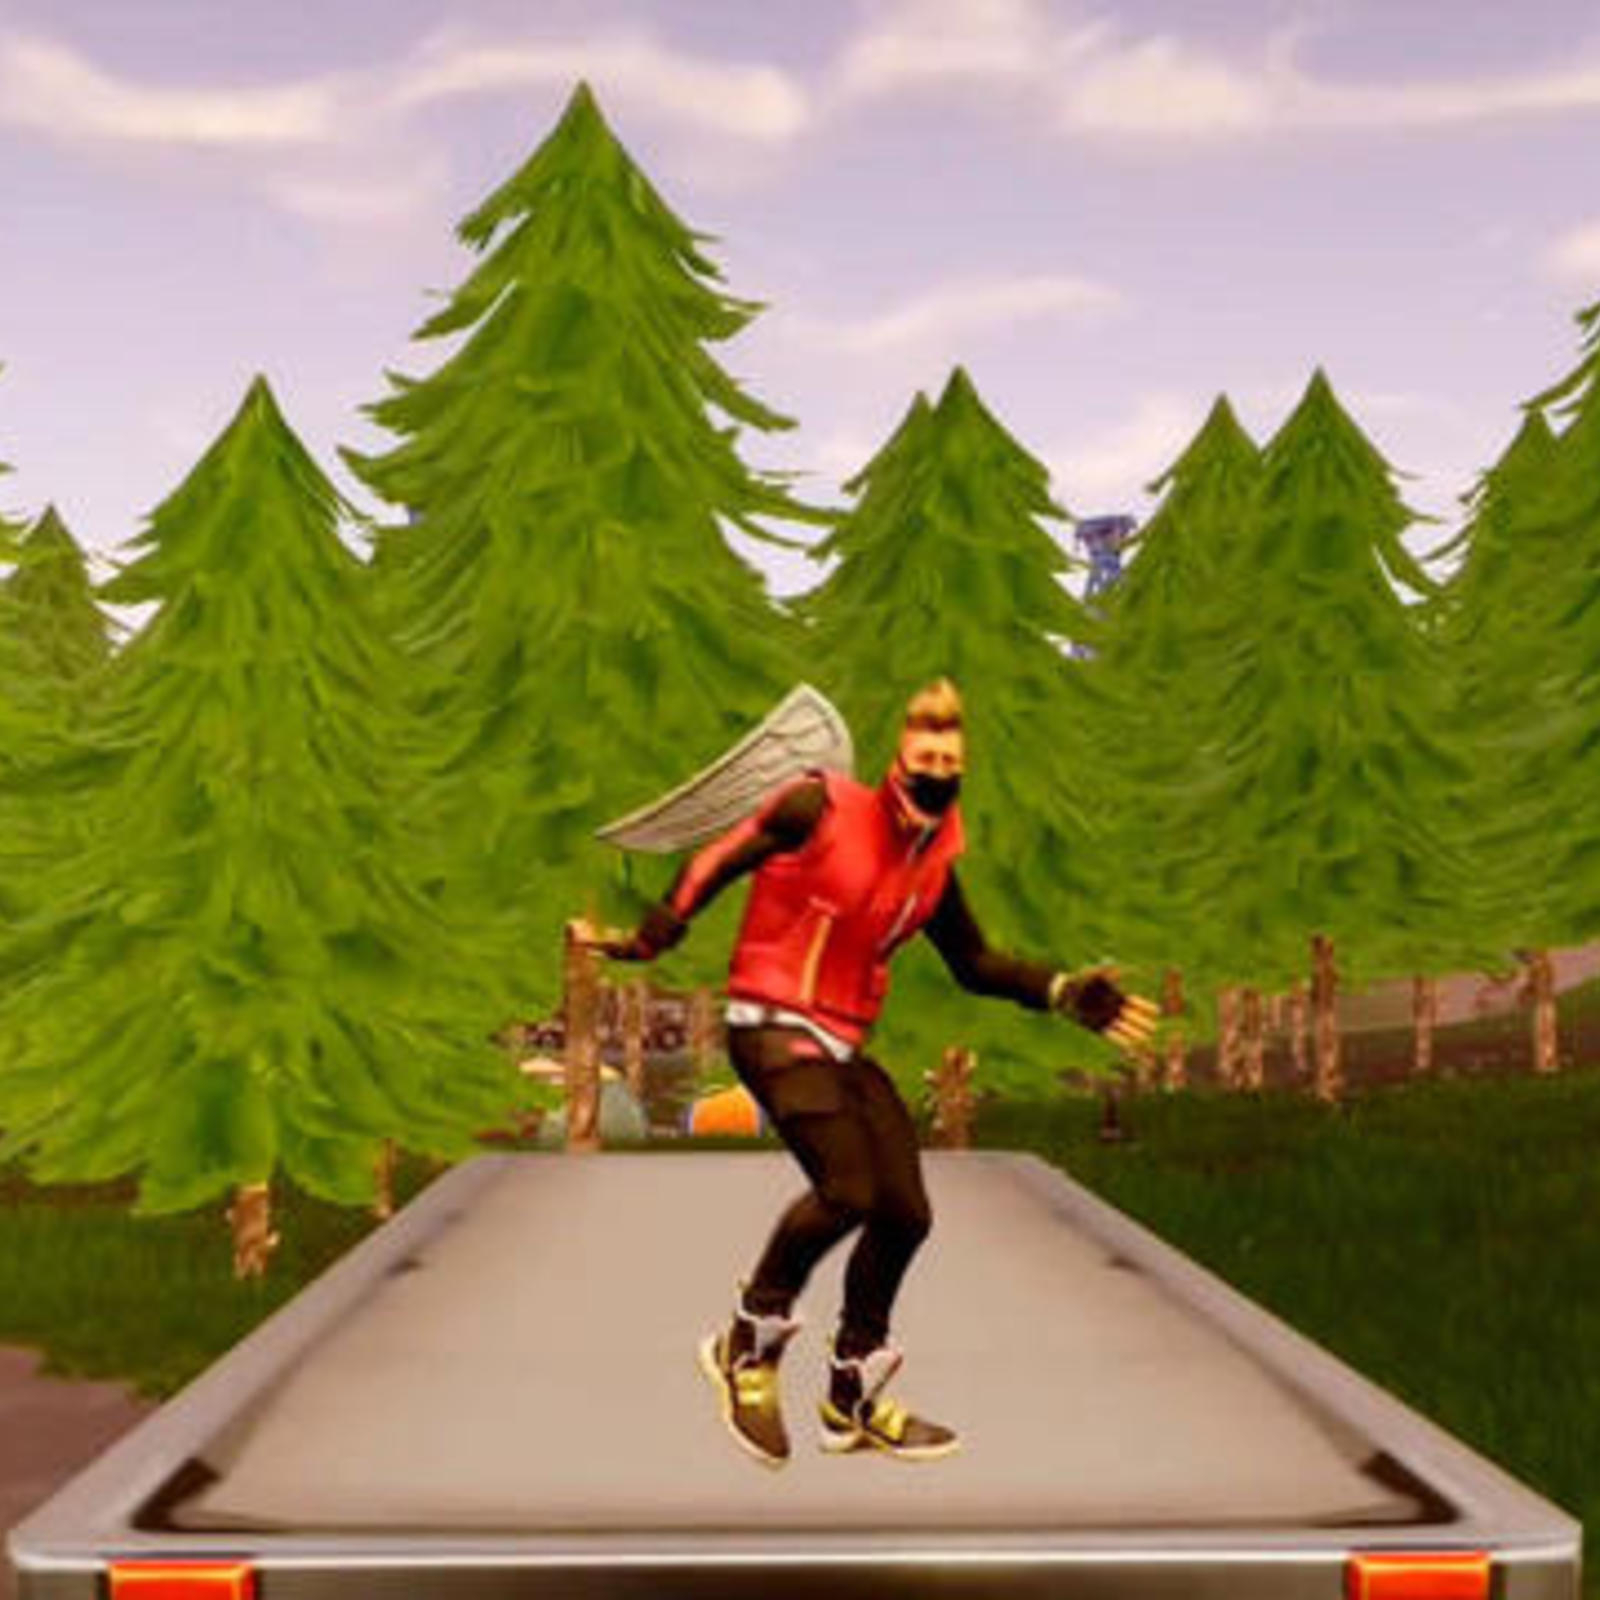 Rapper accuses Fortnite of stealing his dance moves